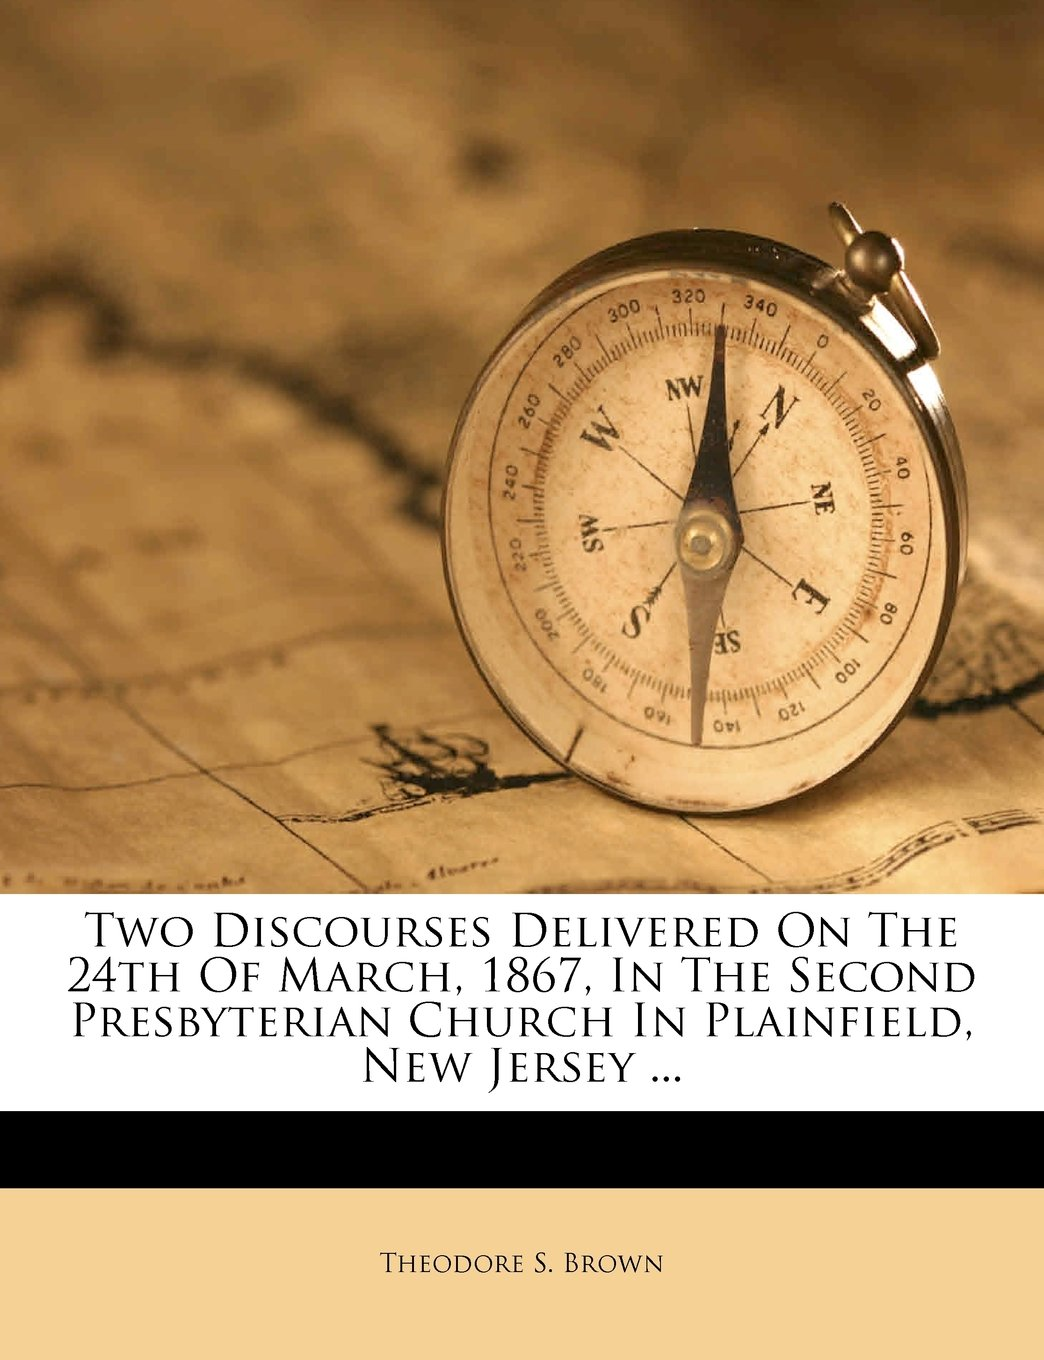 Download Two Discourses Delivered On The 24th Of March, 1867, In The Second Presbyterian Church In Plainfield, New Jersey ... PDF